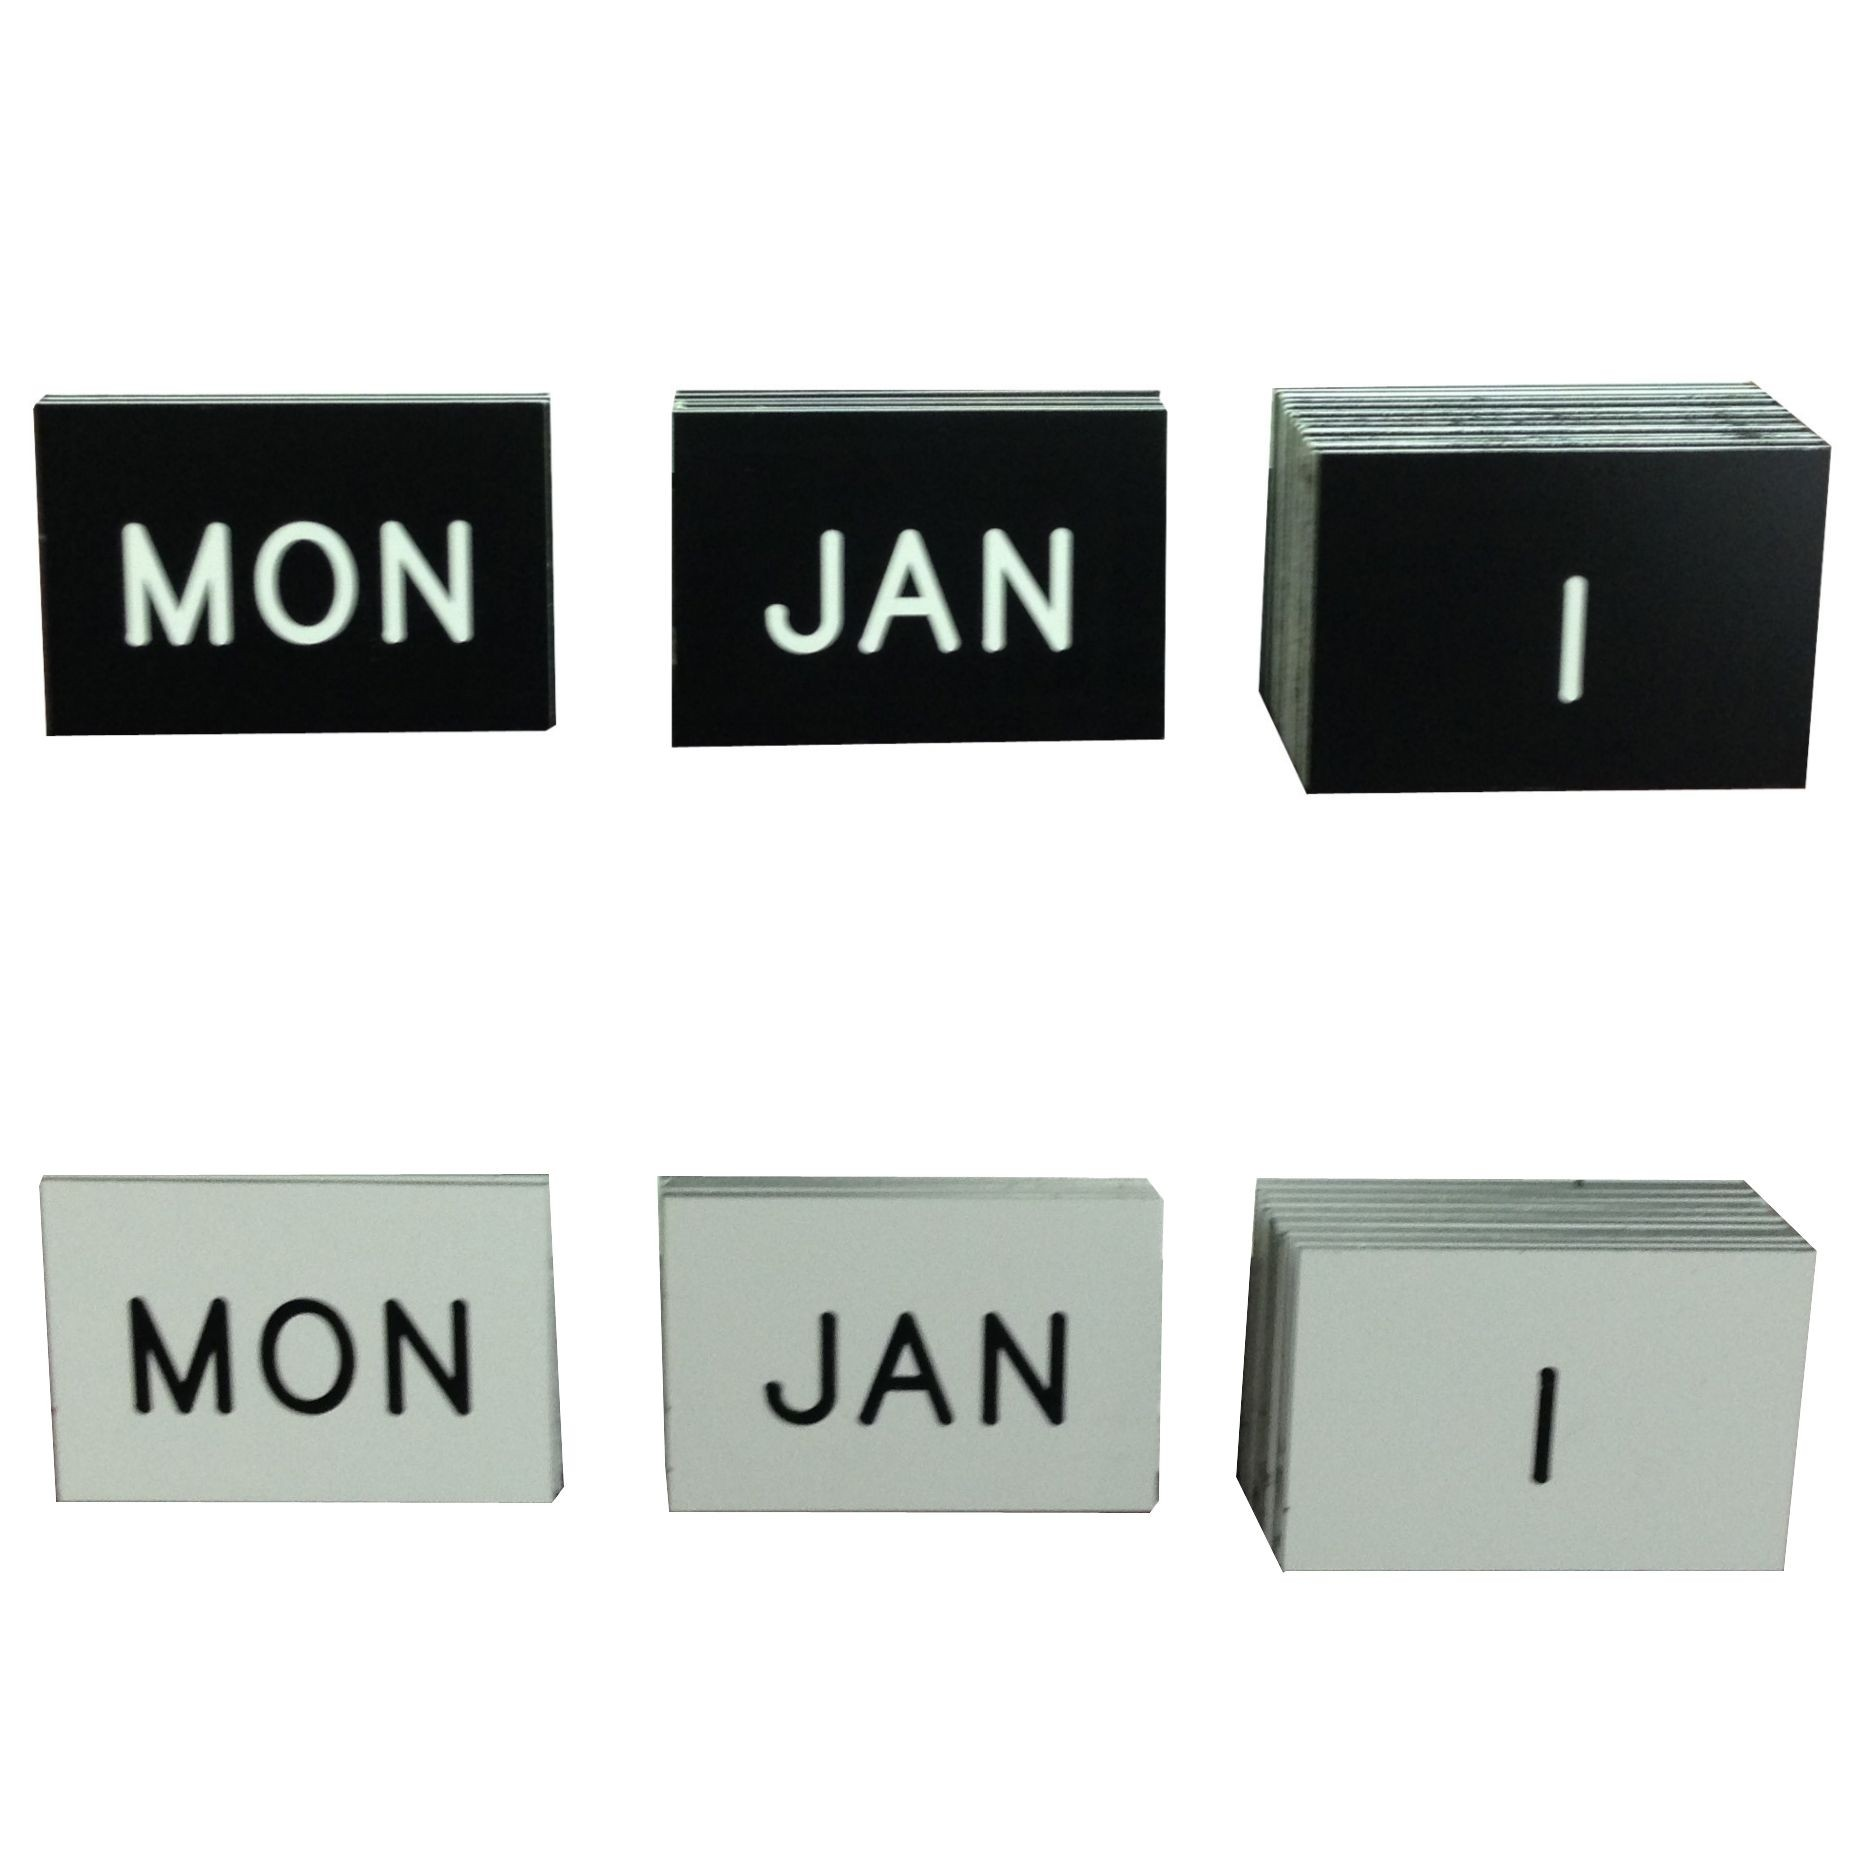 Complete Set of Insert refills for Perpetual Calendars